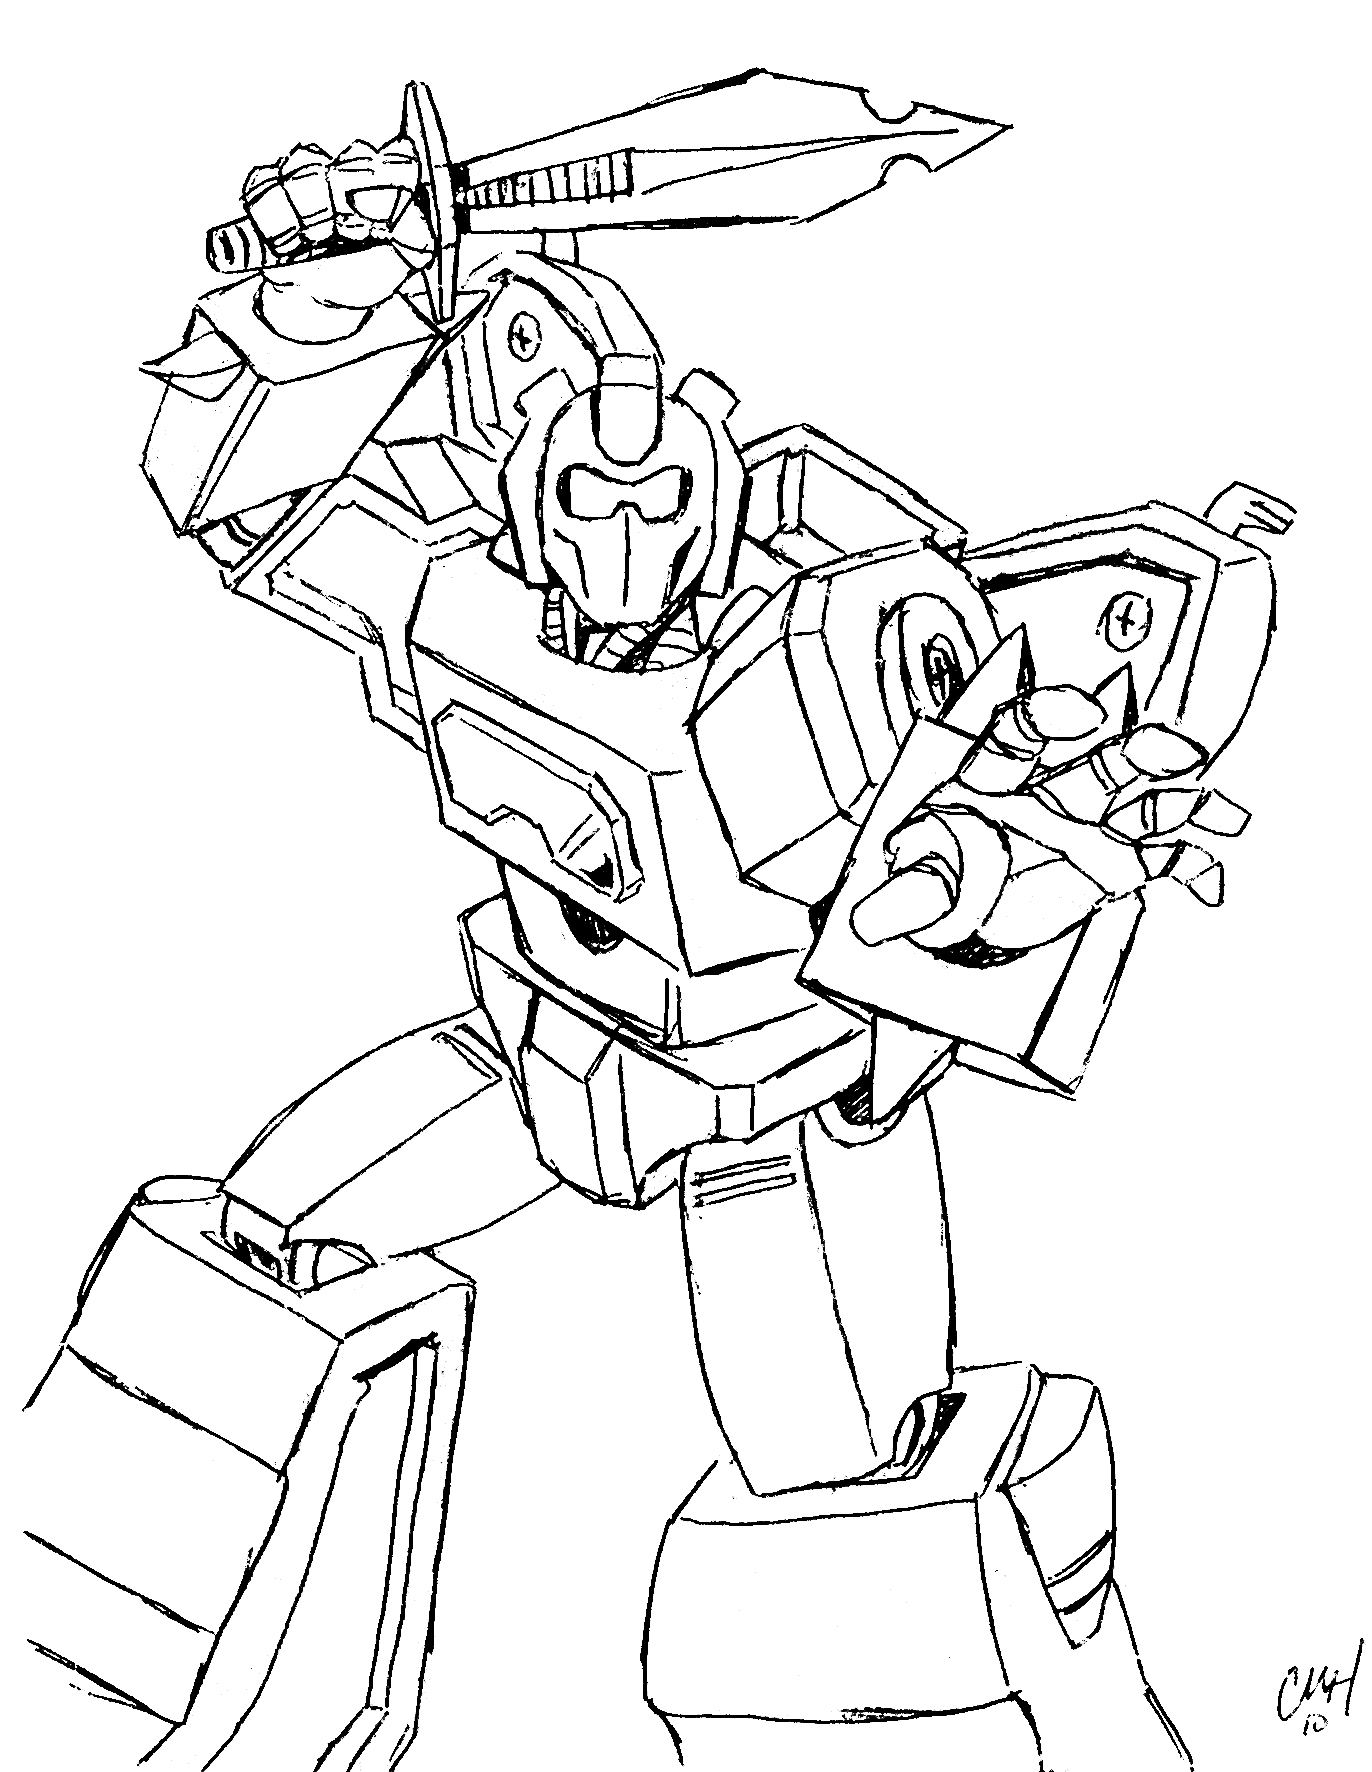 printable pictures of transformers page,printable,coloring pages